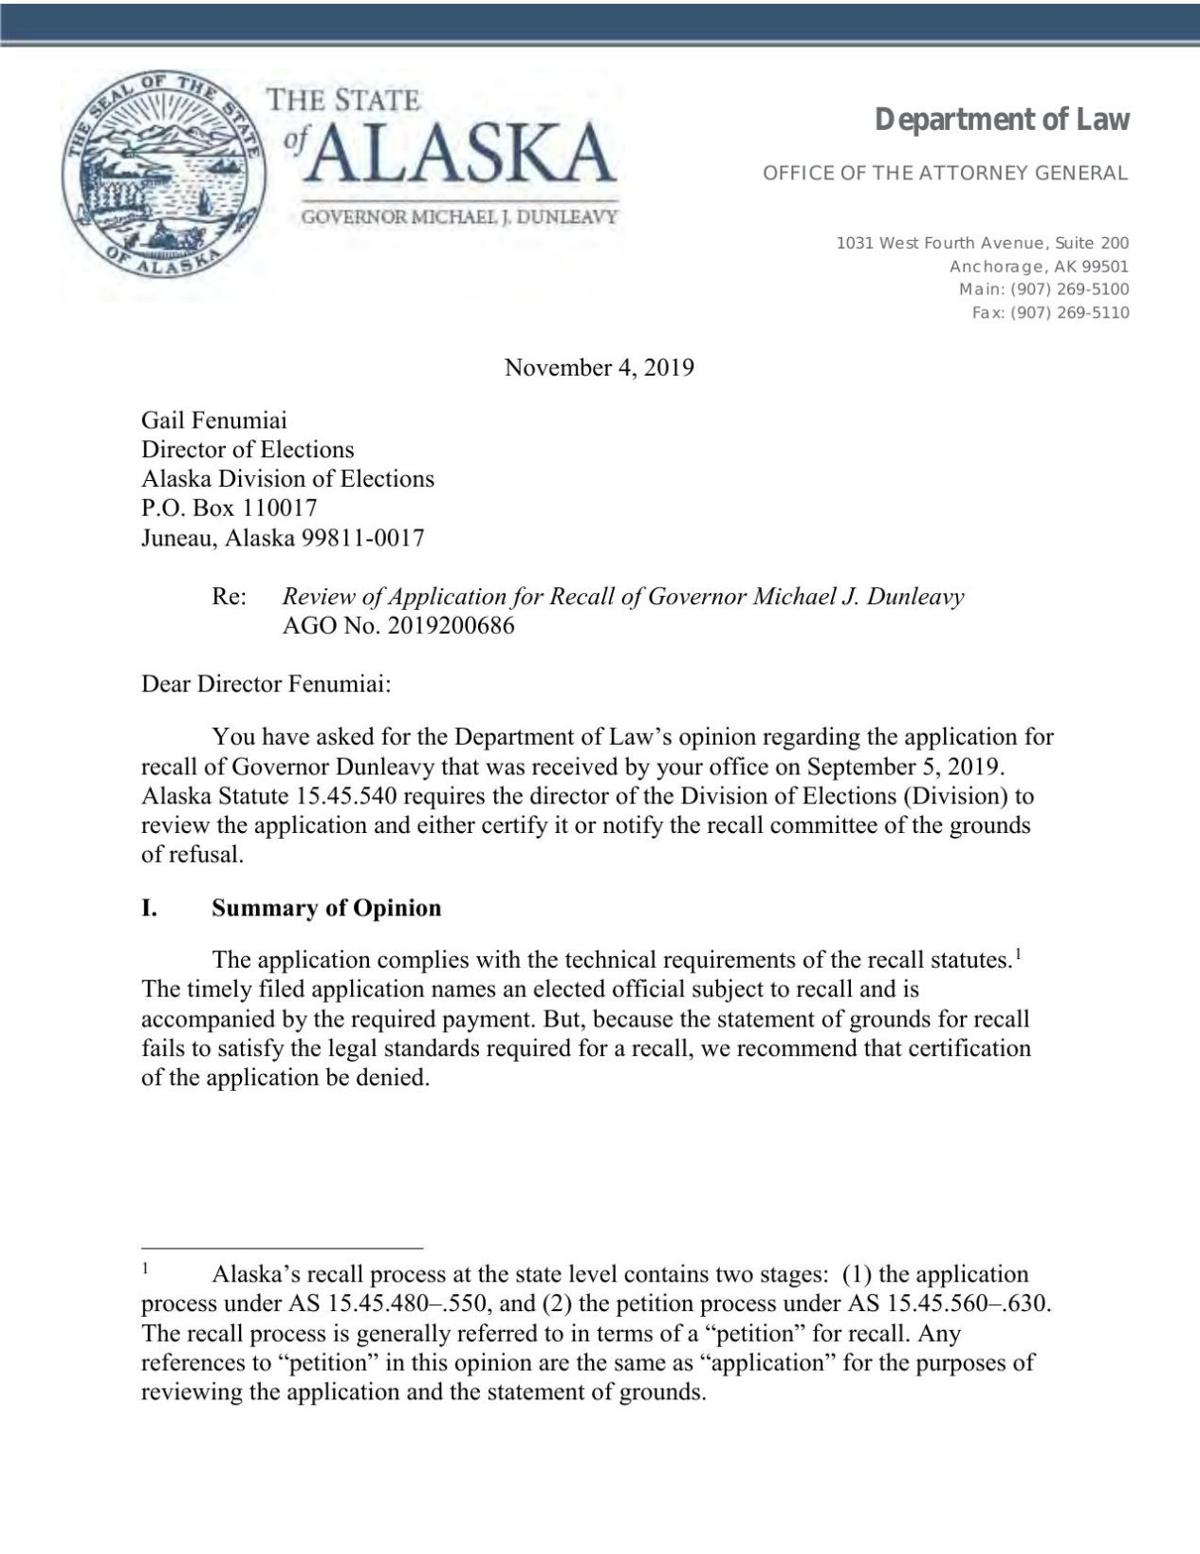 Review of Application for Recall of Governor Michael J. Dunleavy